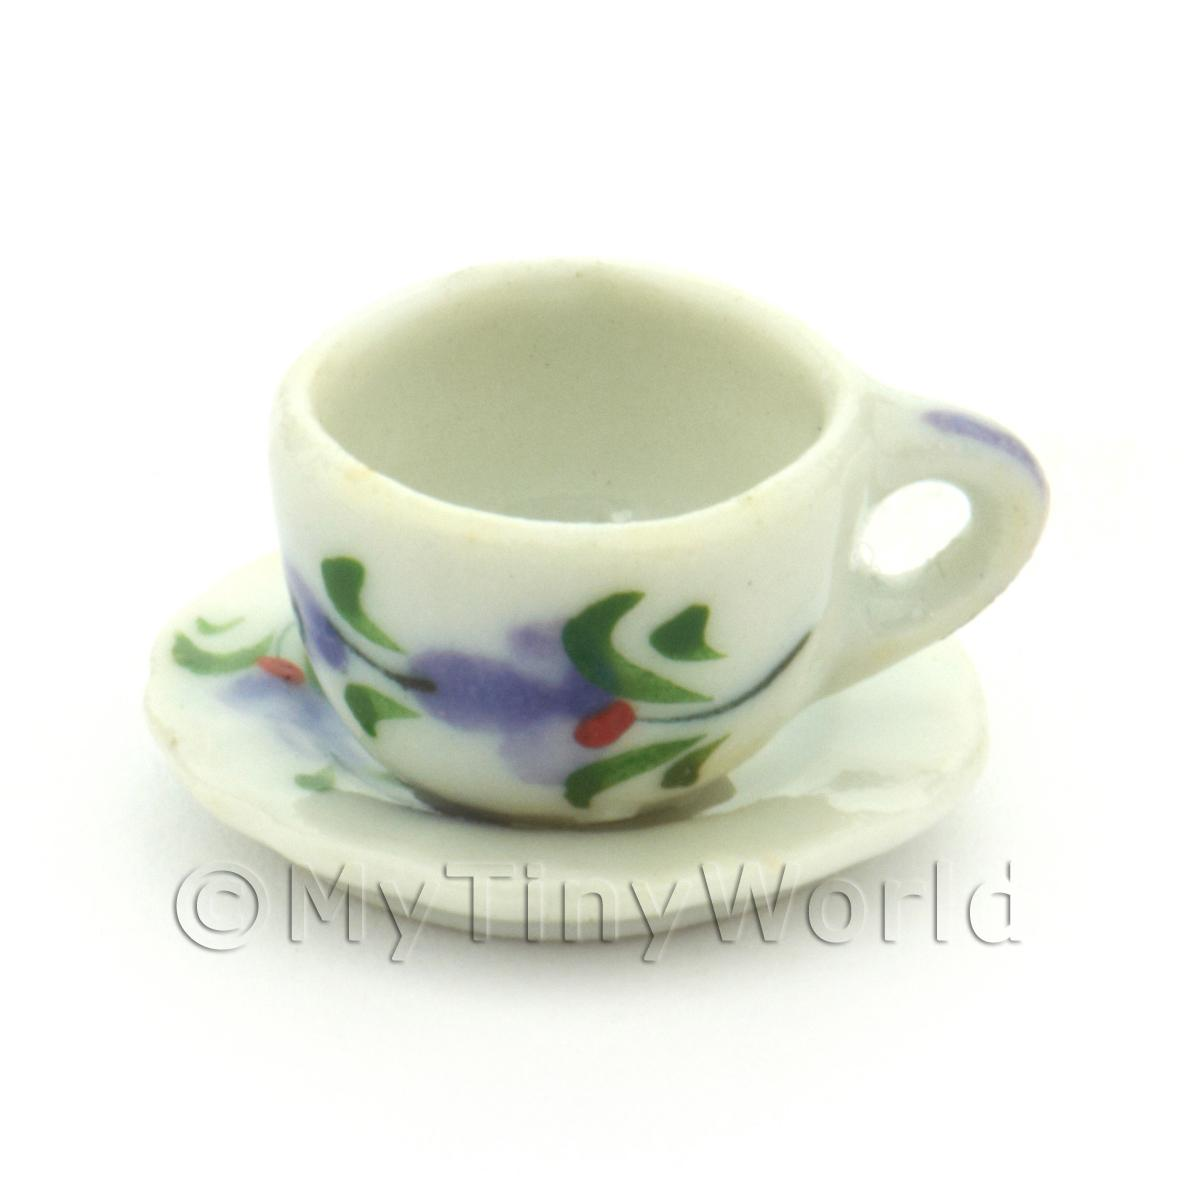 Dolls House Miniature Purple Orchid Design Ceramic Cup And Saucer